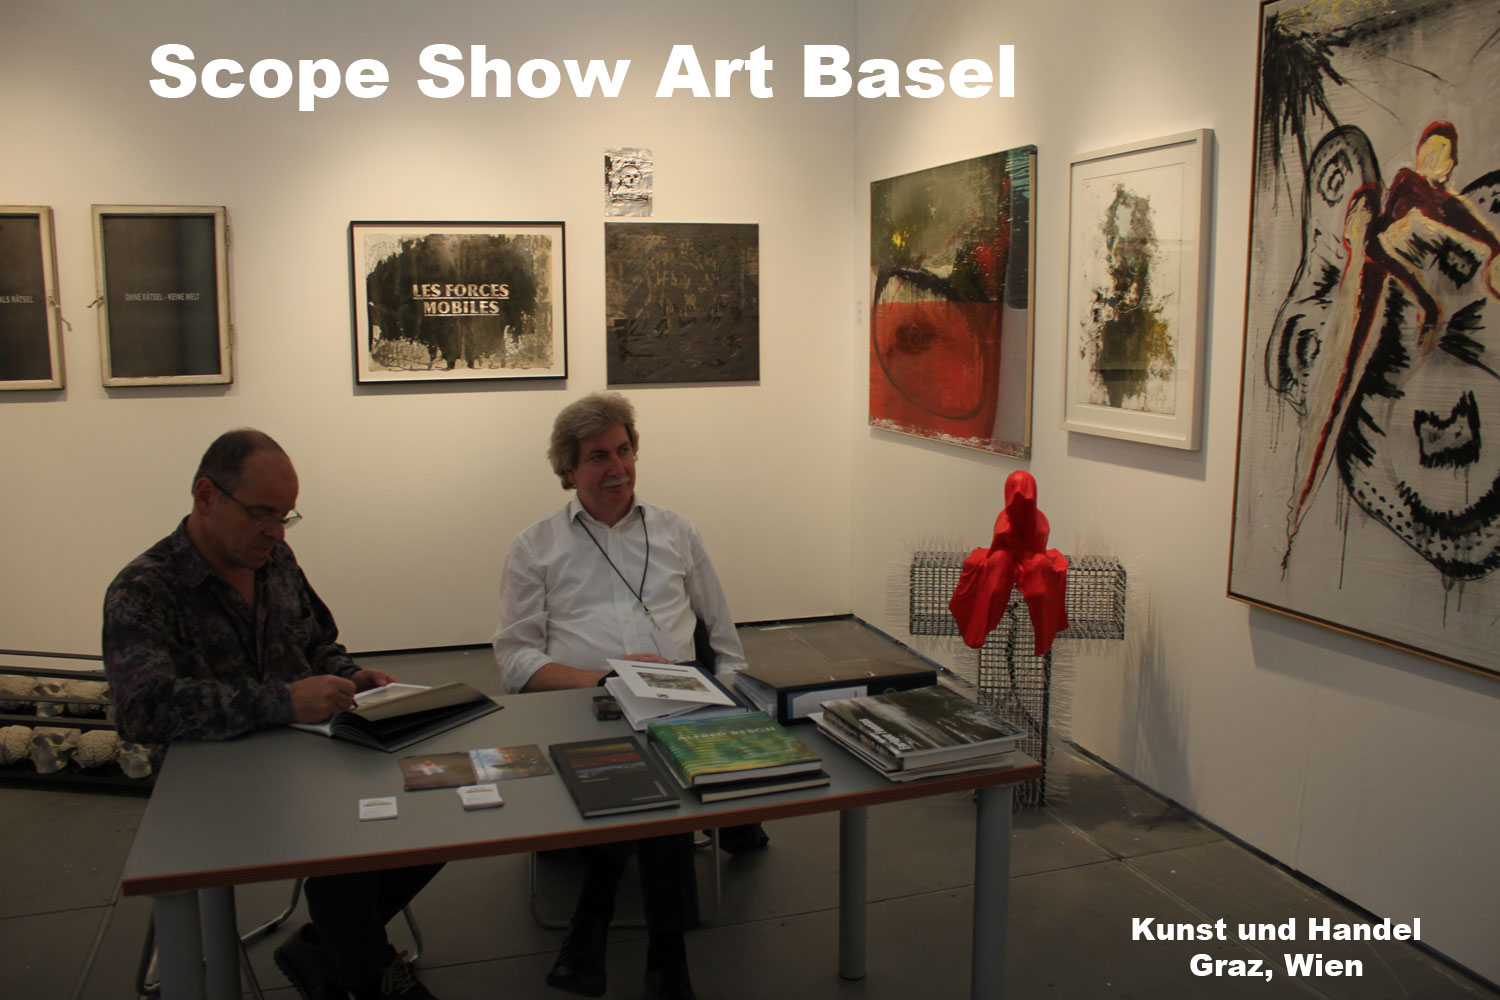 Uncategorized Handel Contemporary just arrived in basel scope show kunst und handel graz vienna t guardian art fair contemporary